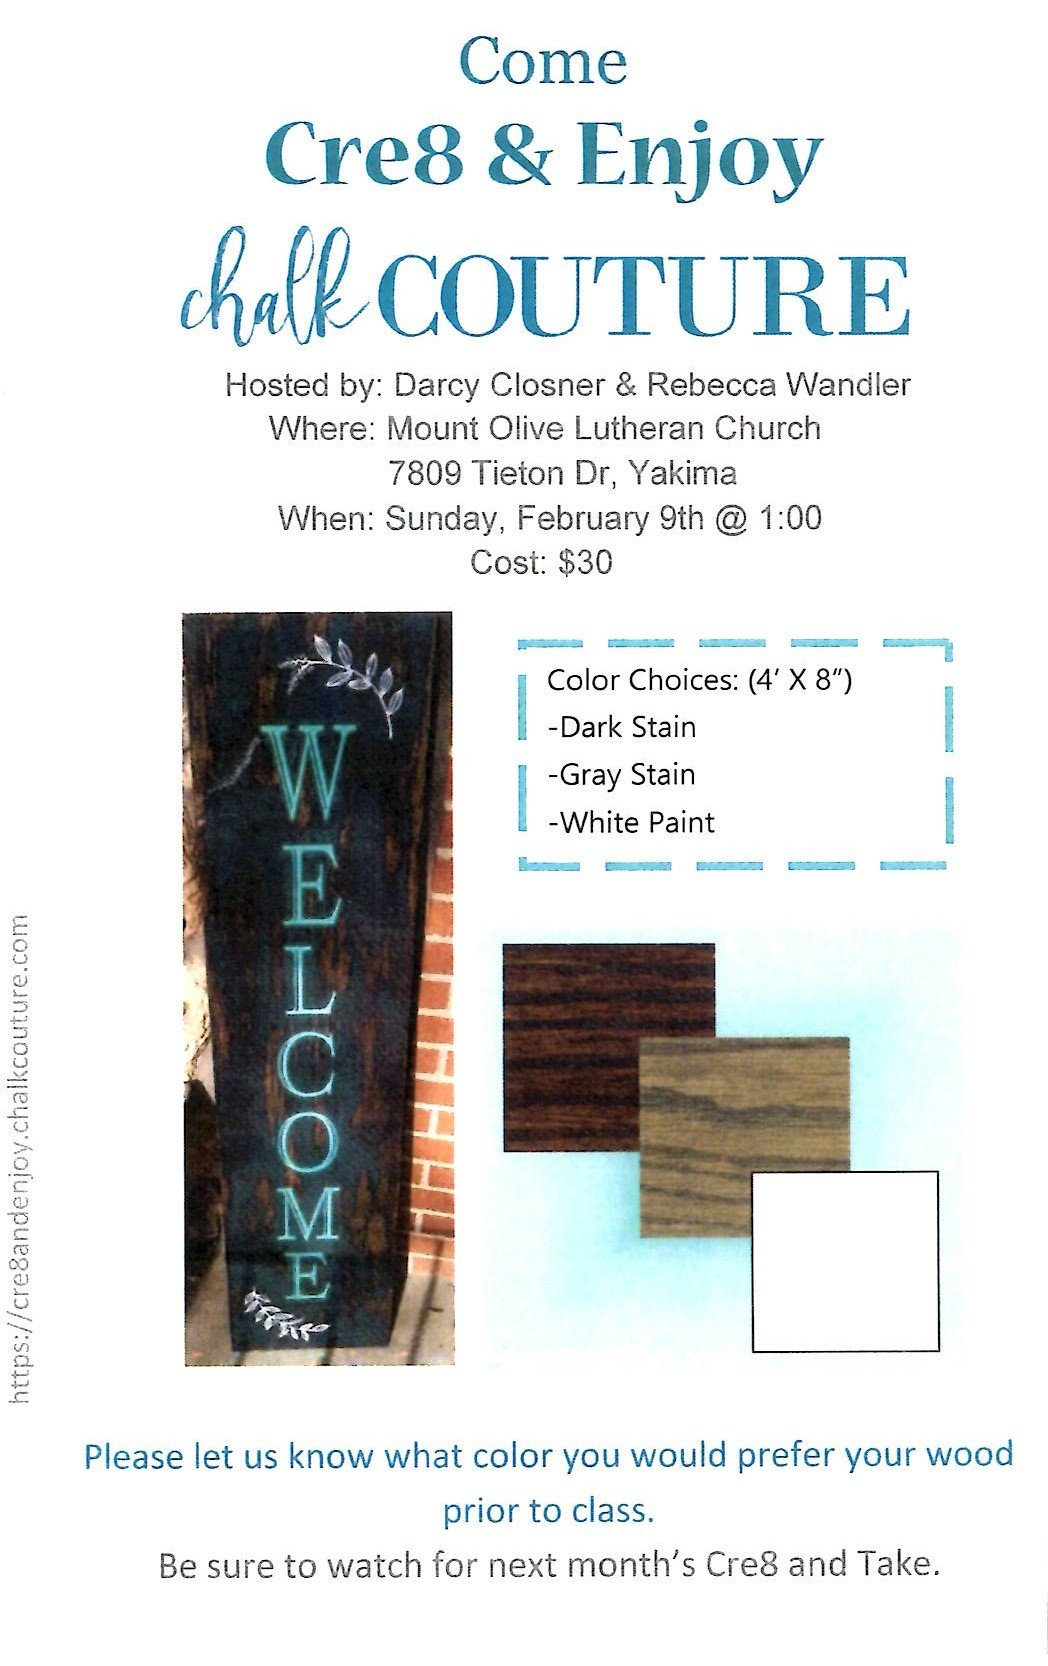 Cre8 & Enjoy-Chalk Couture @ Mt. Olive Lutheran Church